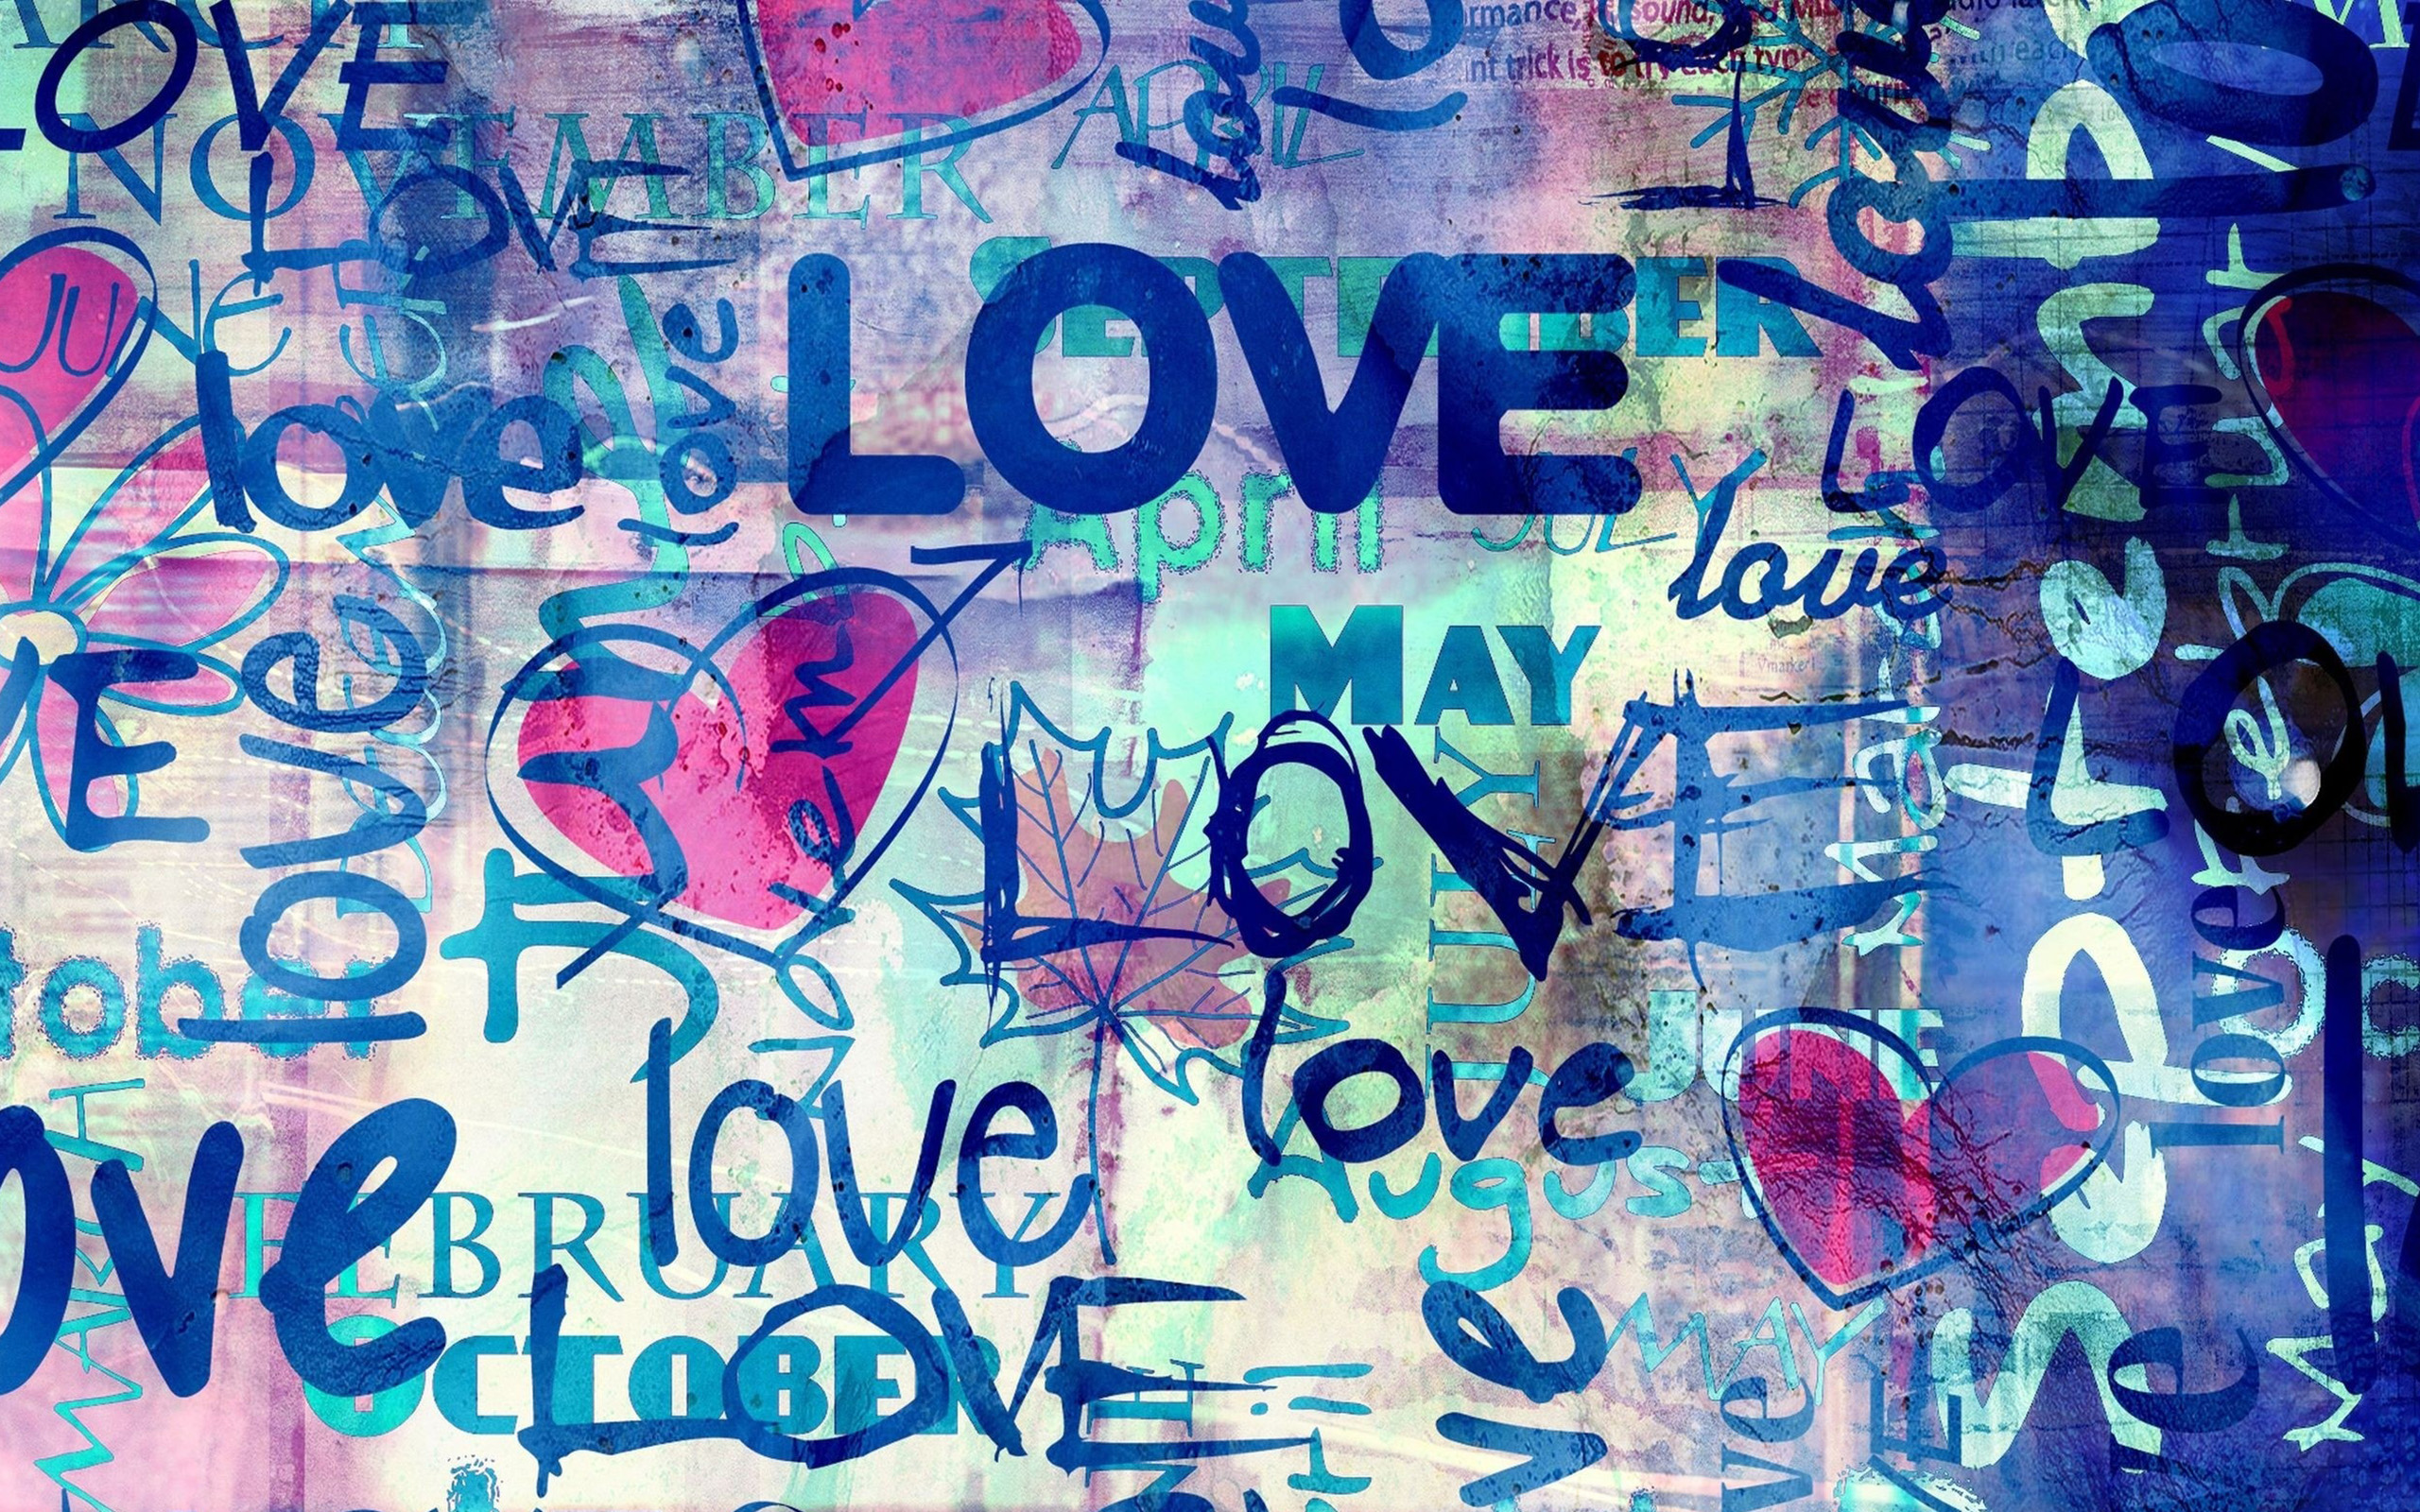 Love Wallpapers With Text : Download Free Graffiti Wallpaper Images For Laptop & Desktops